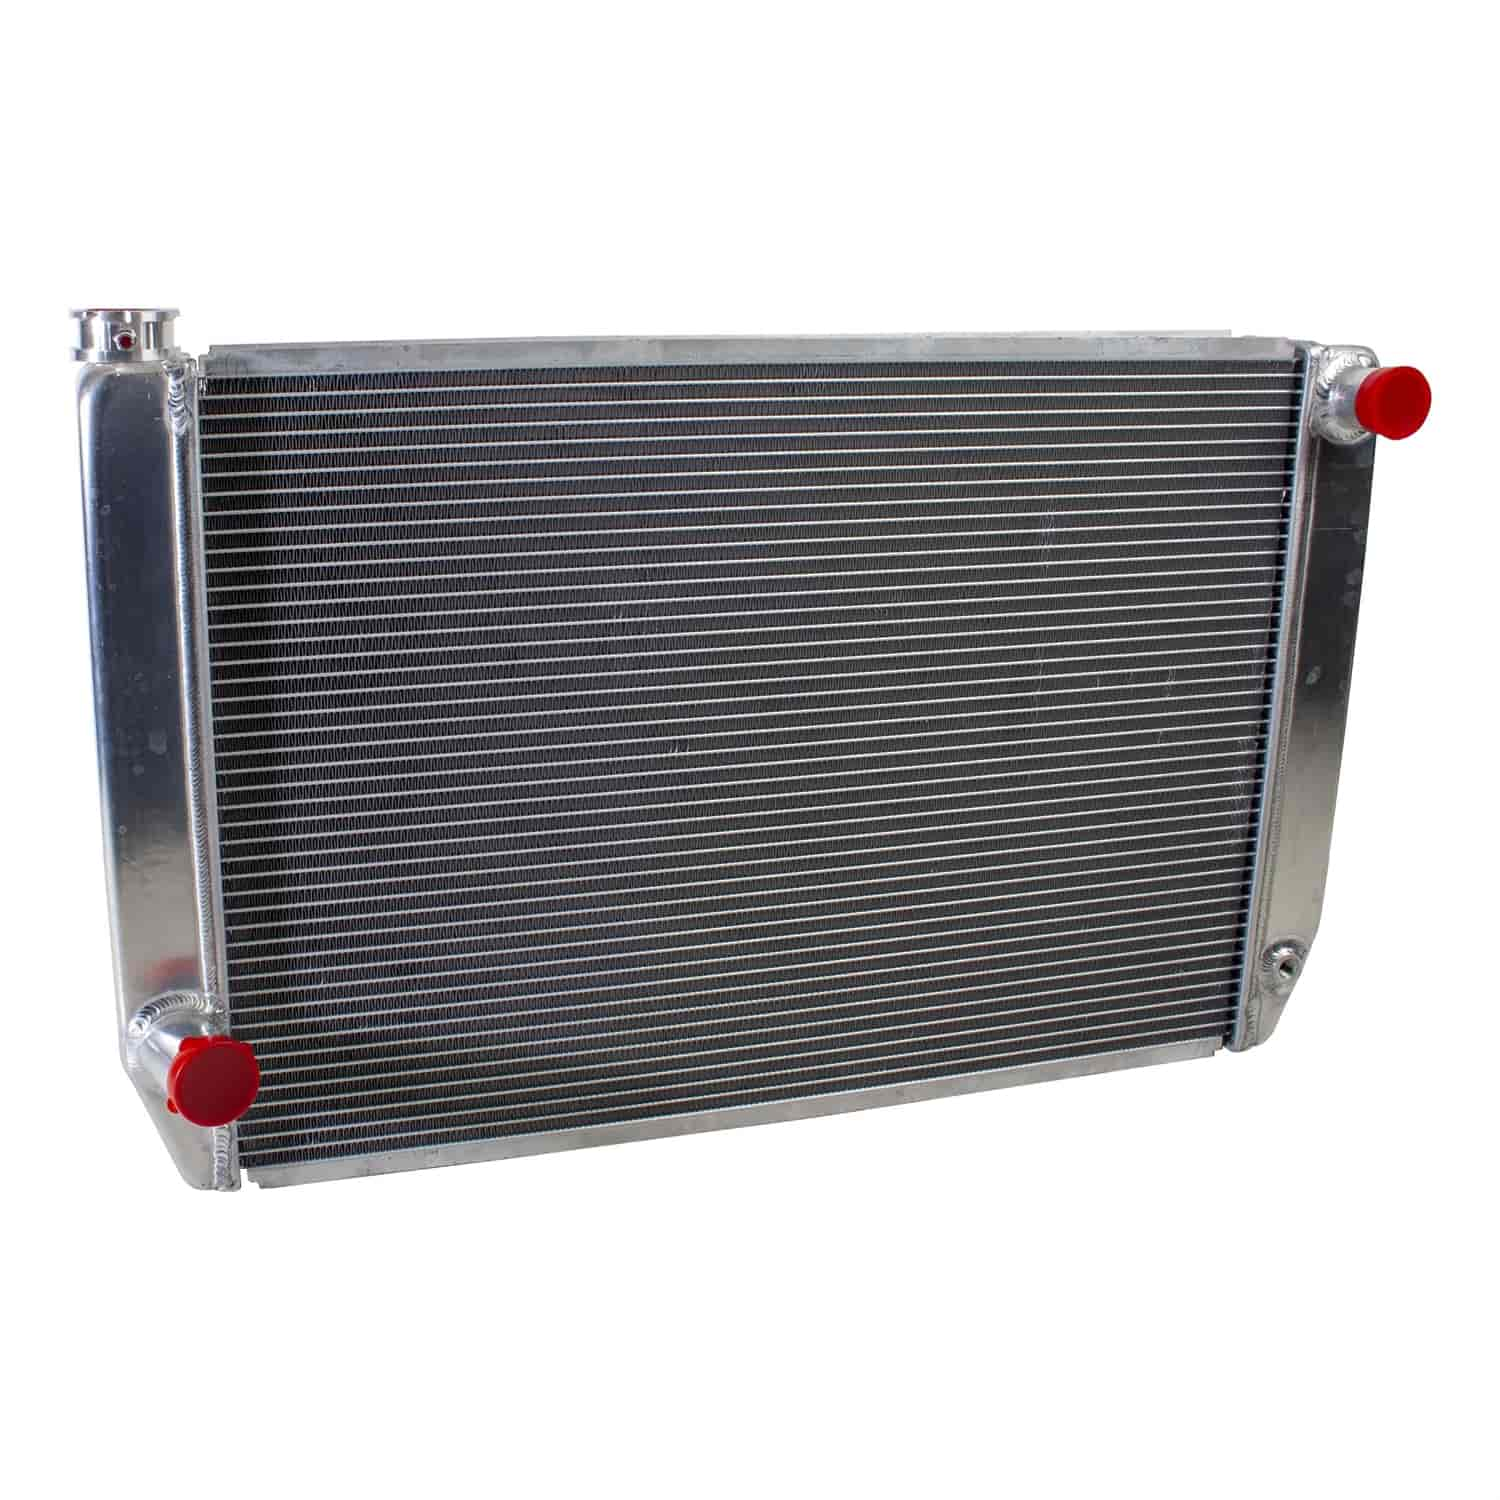 Griffin Radiators 1-26272-X